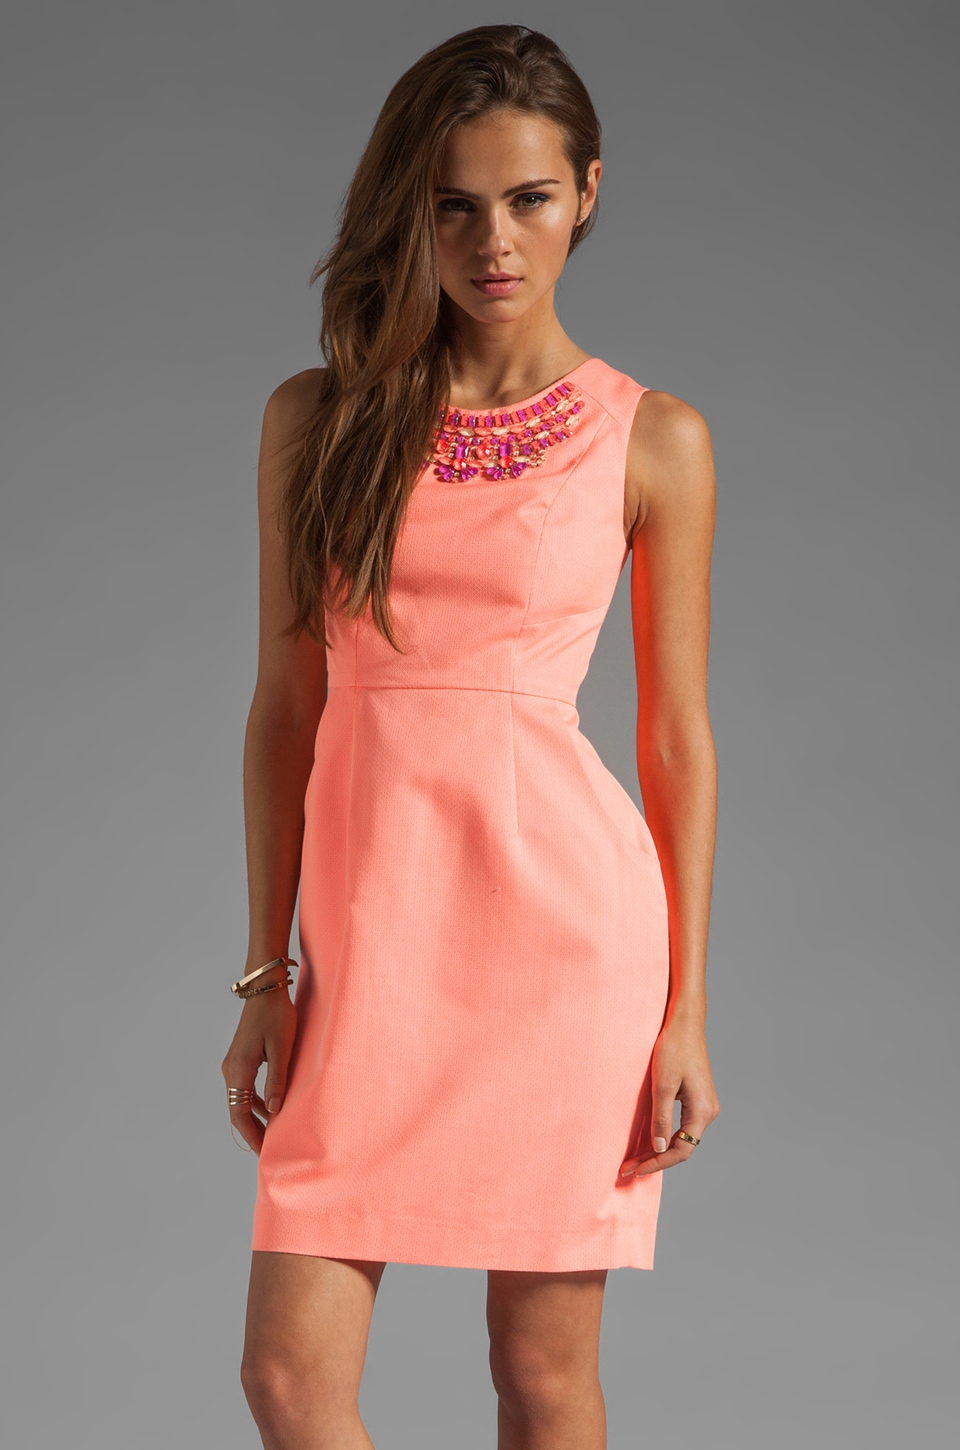 Shoshanna Beaded Miki Sheath Dress in Neon Peach